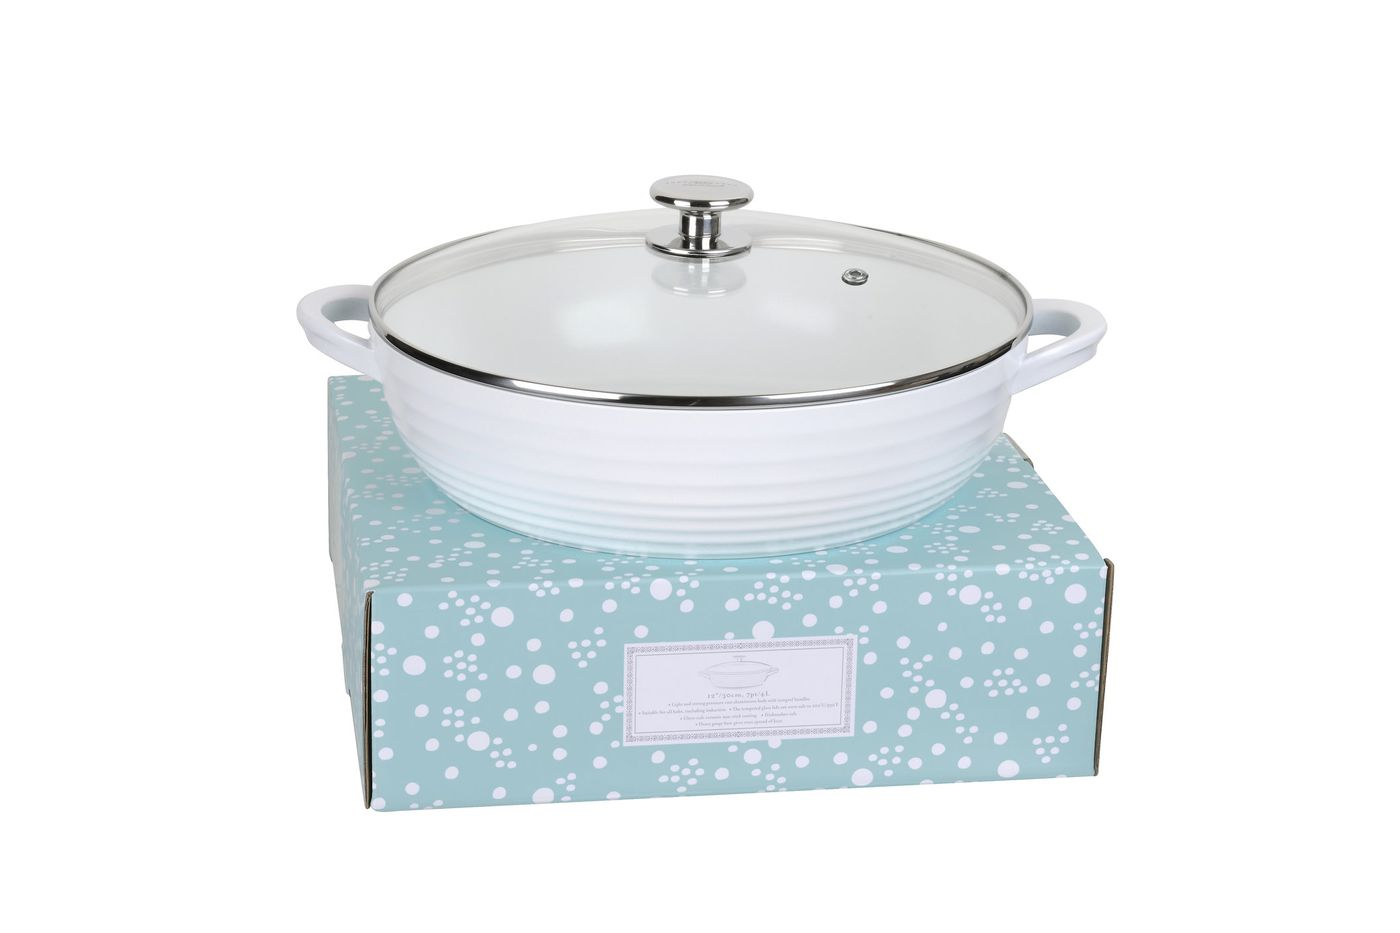 Sophie Conran for Portmeirion Cookware Casserole Dish + Lid Shallow - White. Metal body with ceramic coating. thumb 2